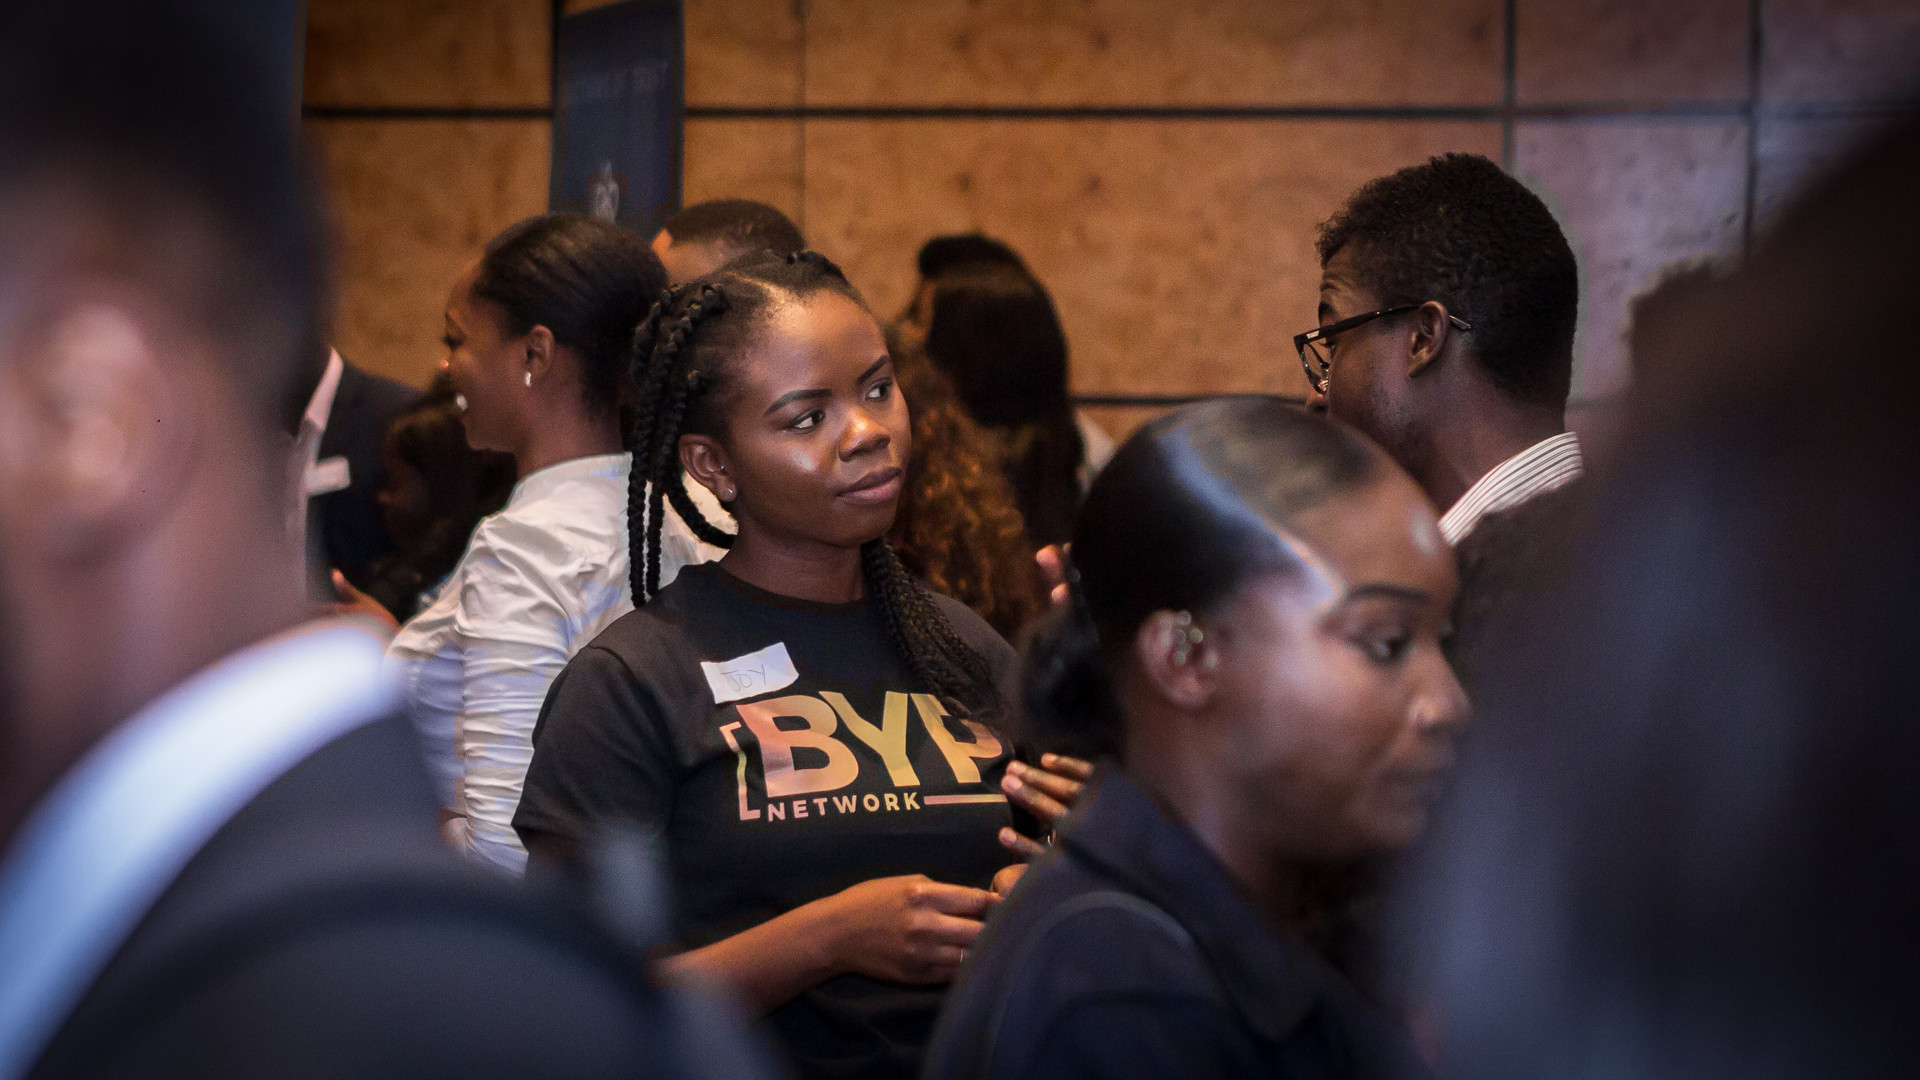 BYP networking -5982.jpg